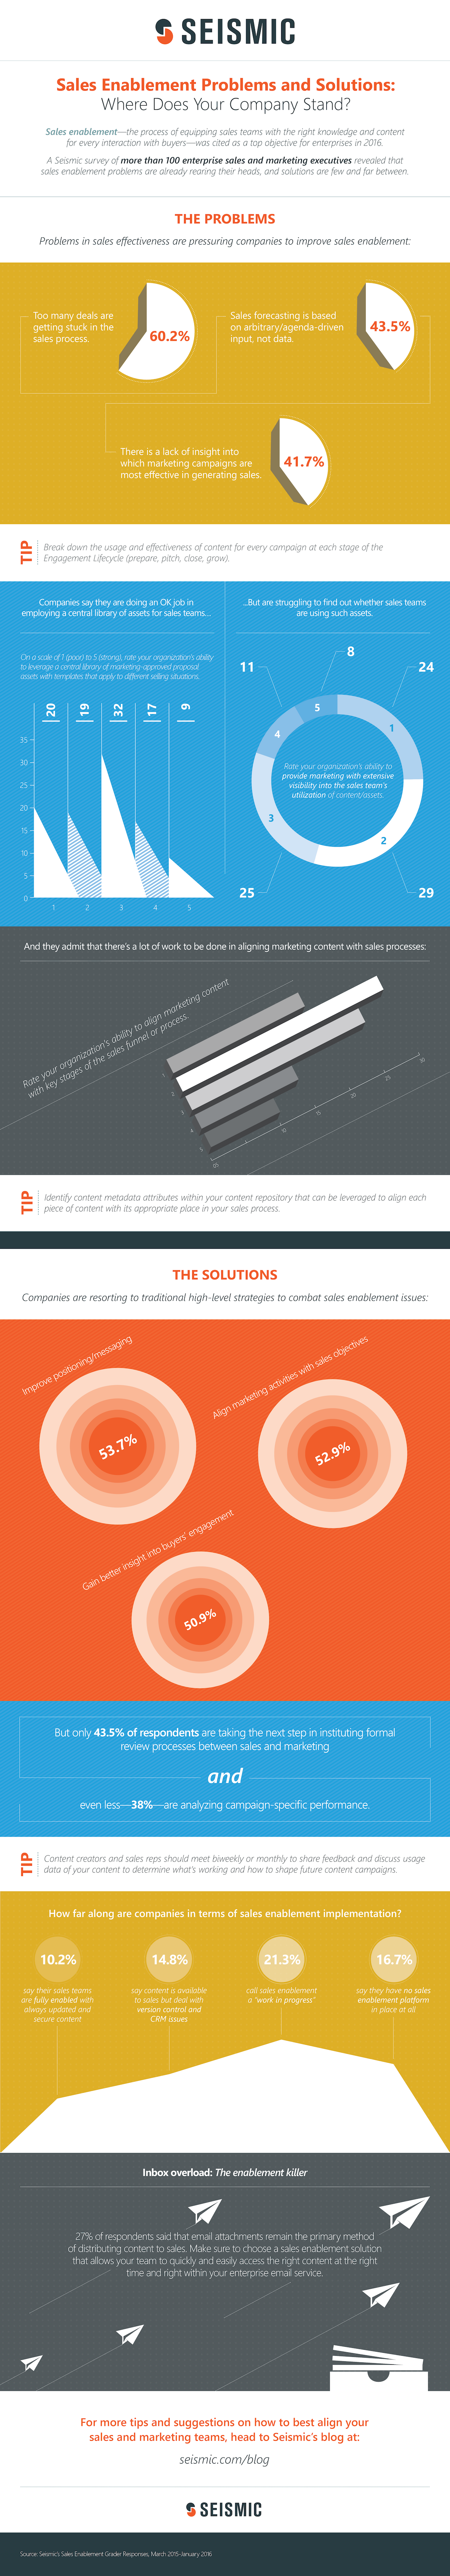 Sales Enablement Problems and Solutions